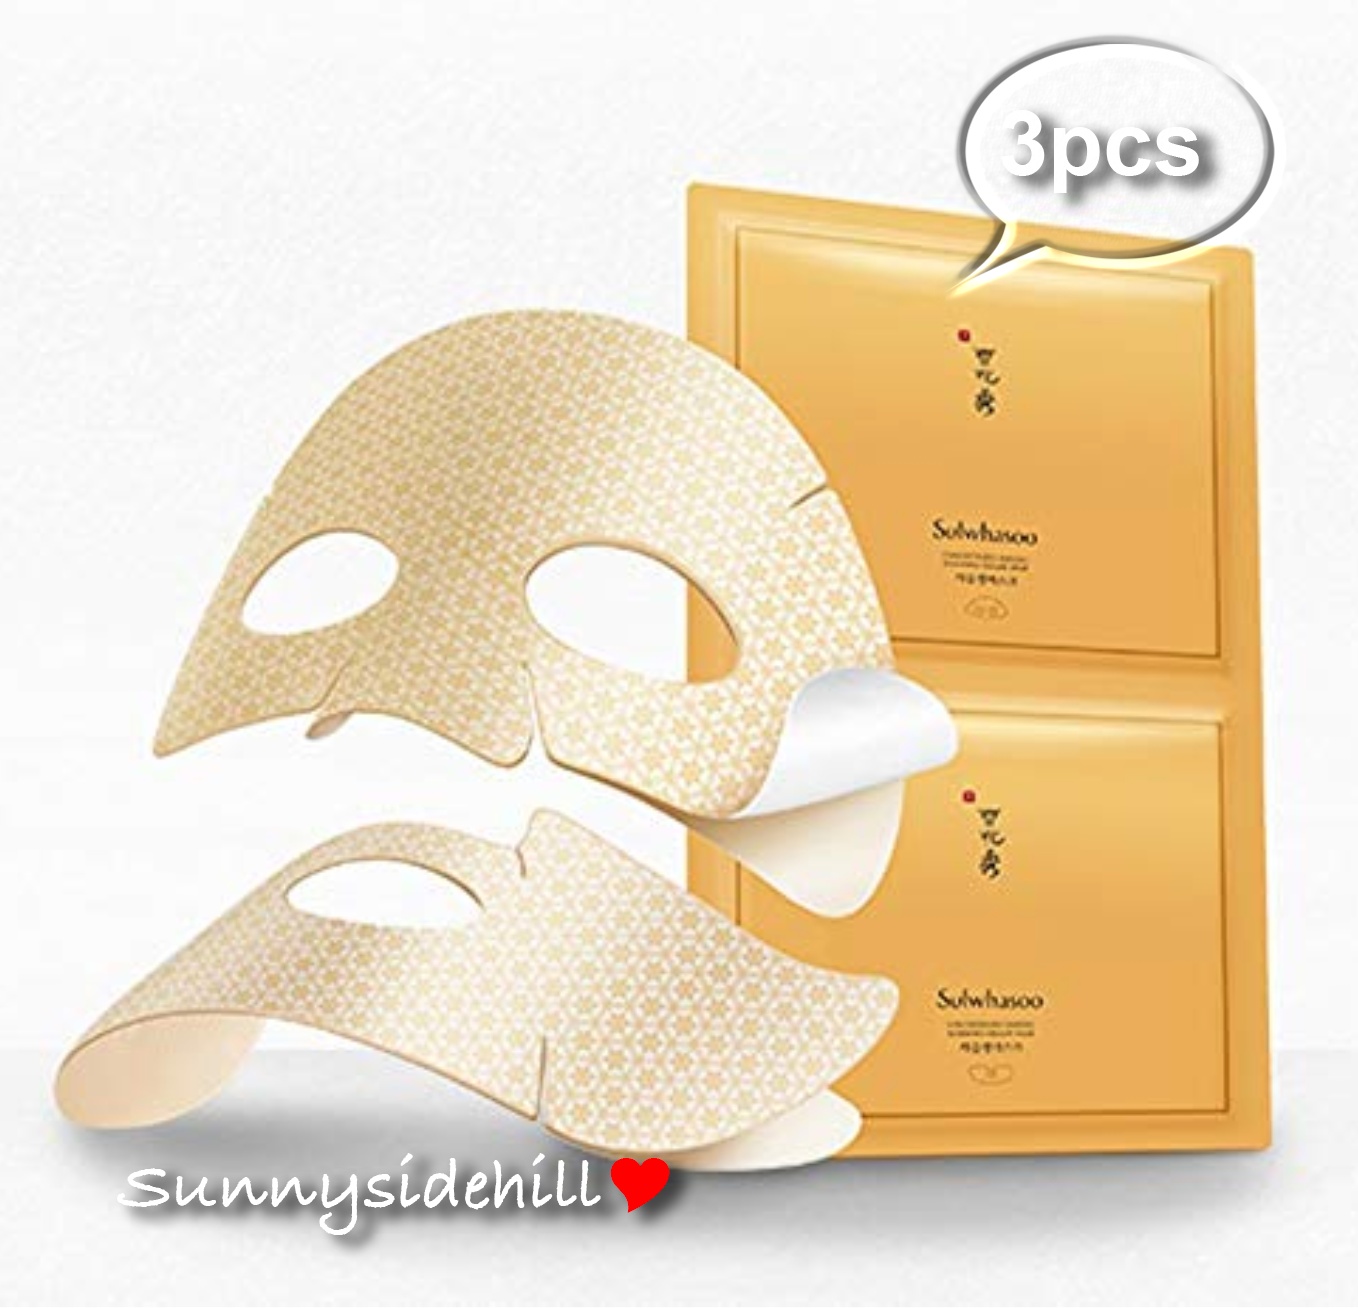 Sulwhasoo Concentrated Ginseng Renewing Creamy Mask 1pcs Korea Cosmetic.